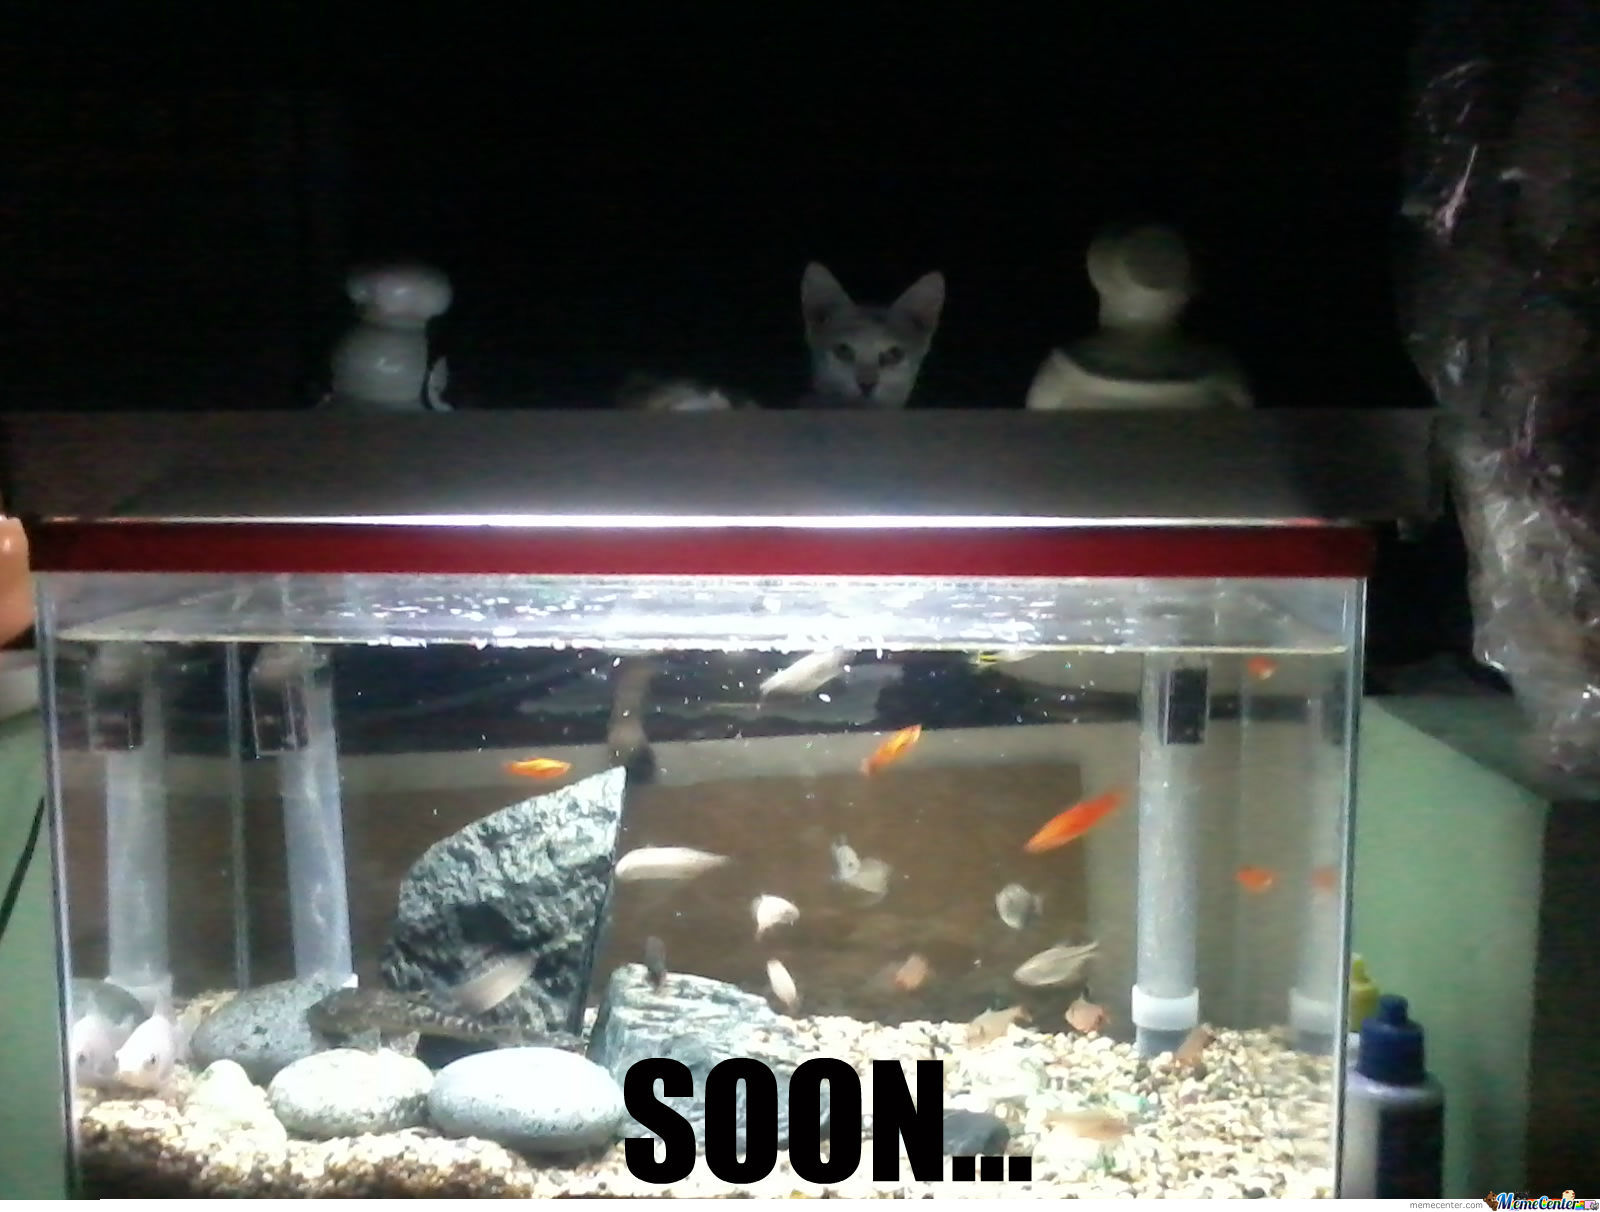 My Cat's Been Like This Since We Got The Aquarium -_-